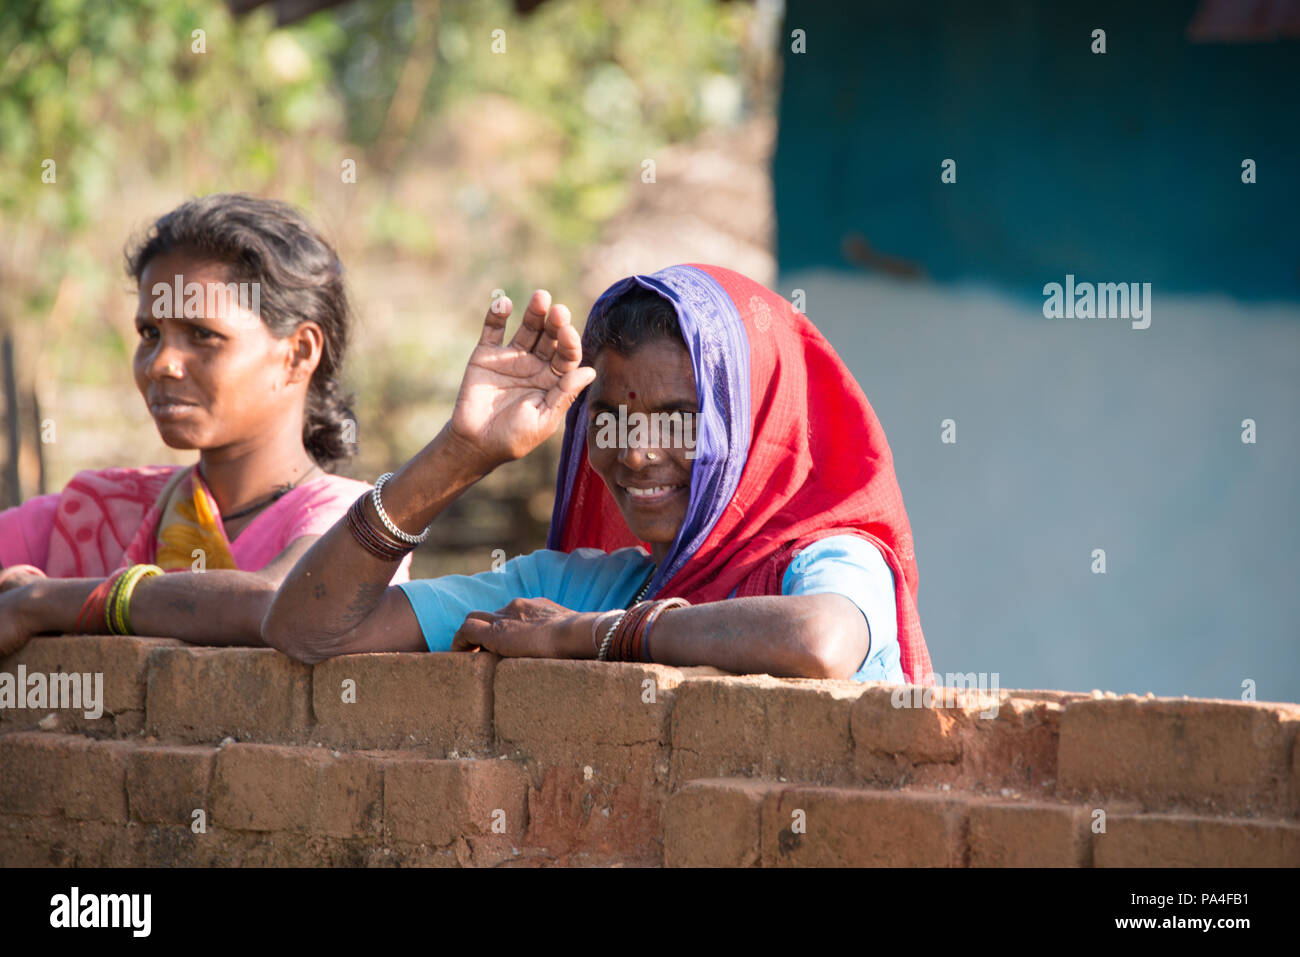 Indian Village Woman Stock Photos & Indian Village Woman